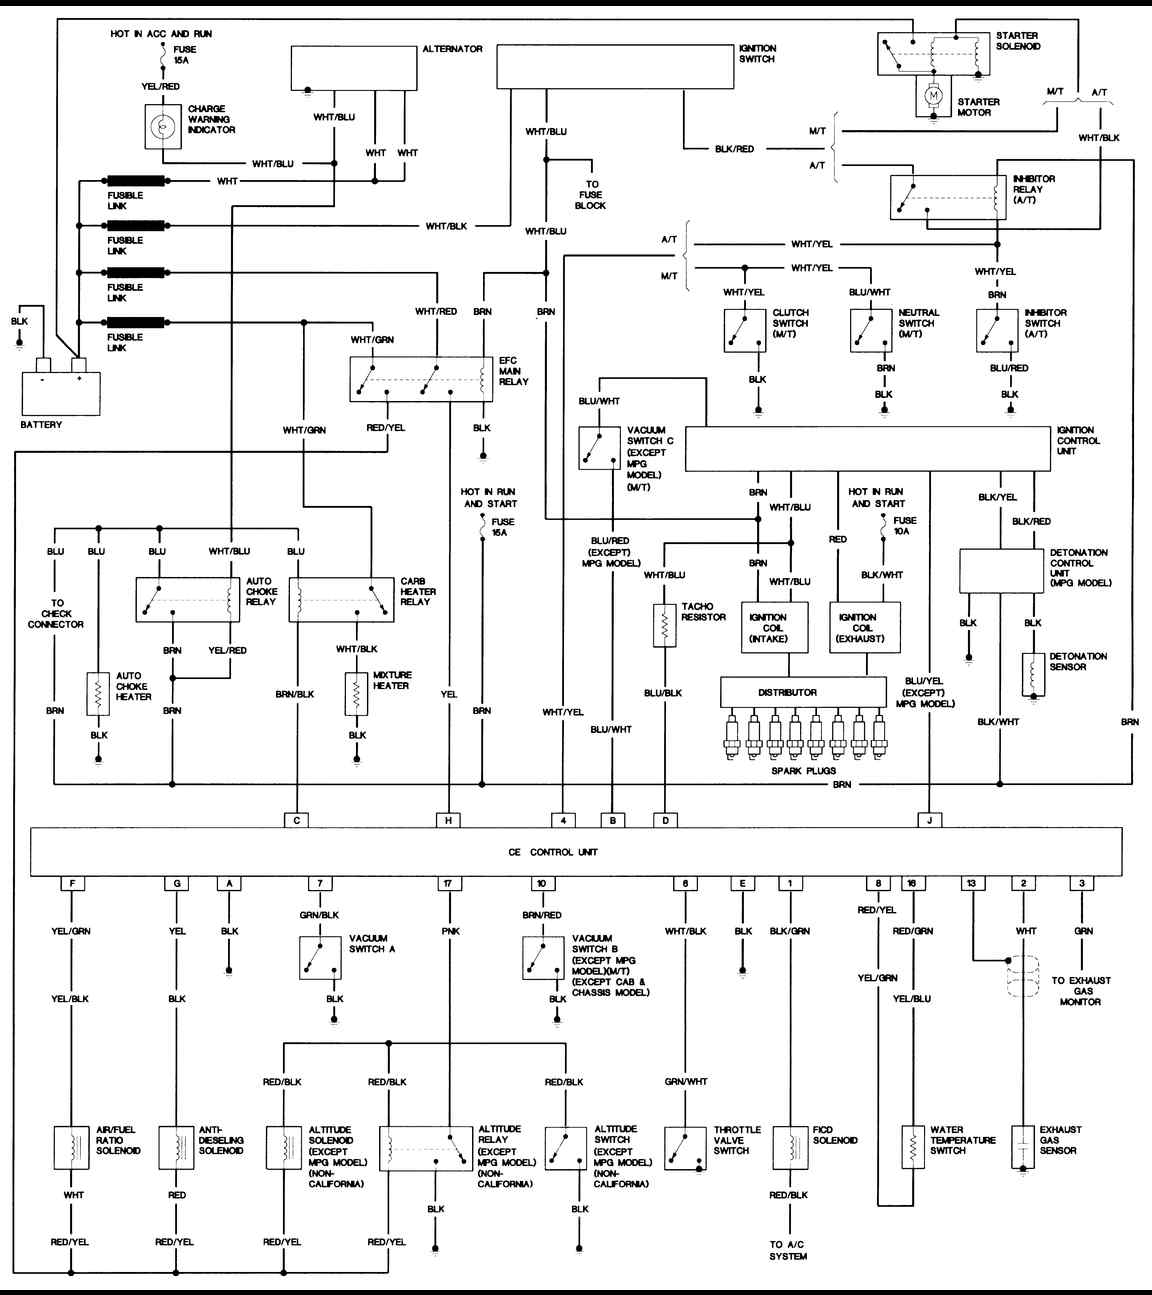 i am trying to get the electrical diagram for a 1986 d 21 nissan 4x4 2008 nissan pathfinder wiring diagram wiring diagram for 1989 nissan pickup truck #7